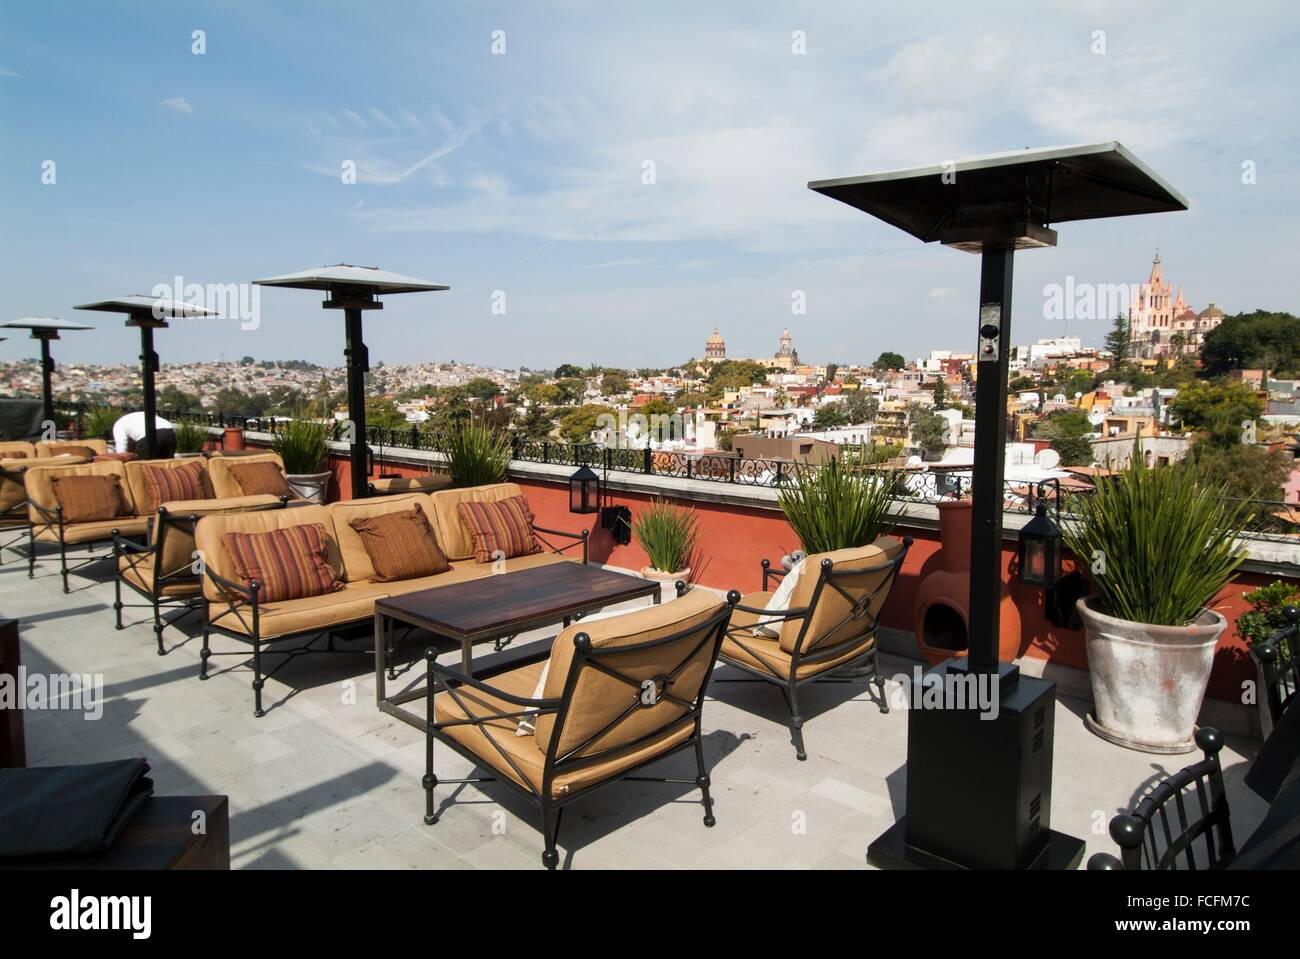 Roof Terrace At The Rosewood Hotel In San Miguel De Allende Mexico Stock Photo Alamy